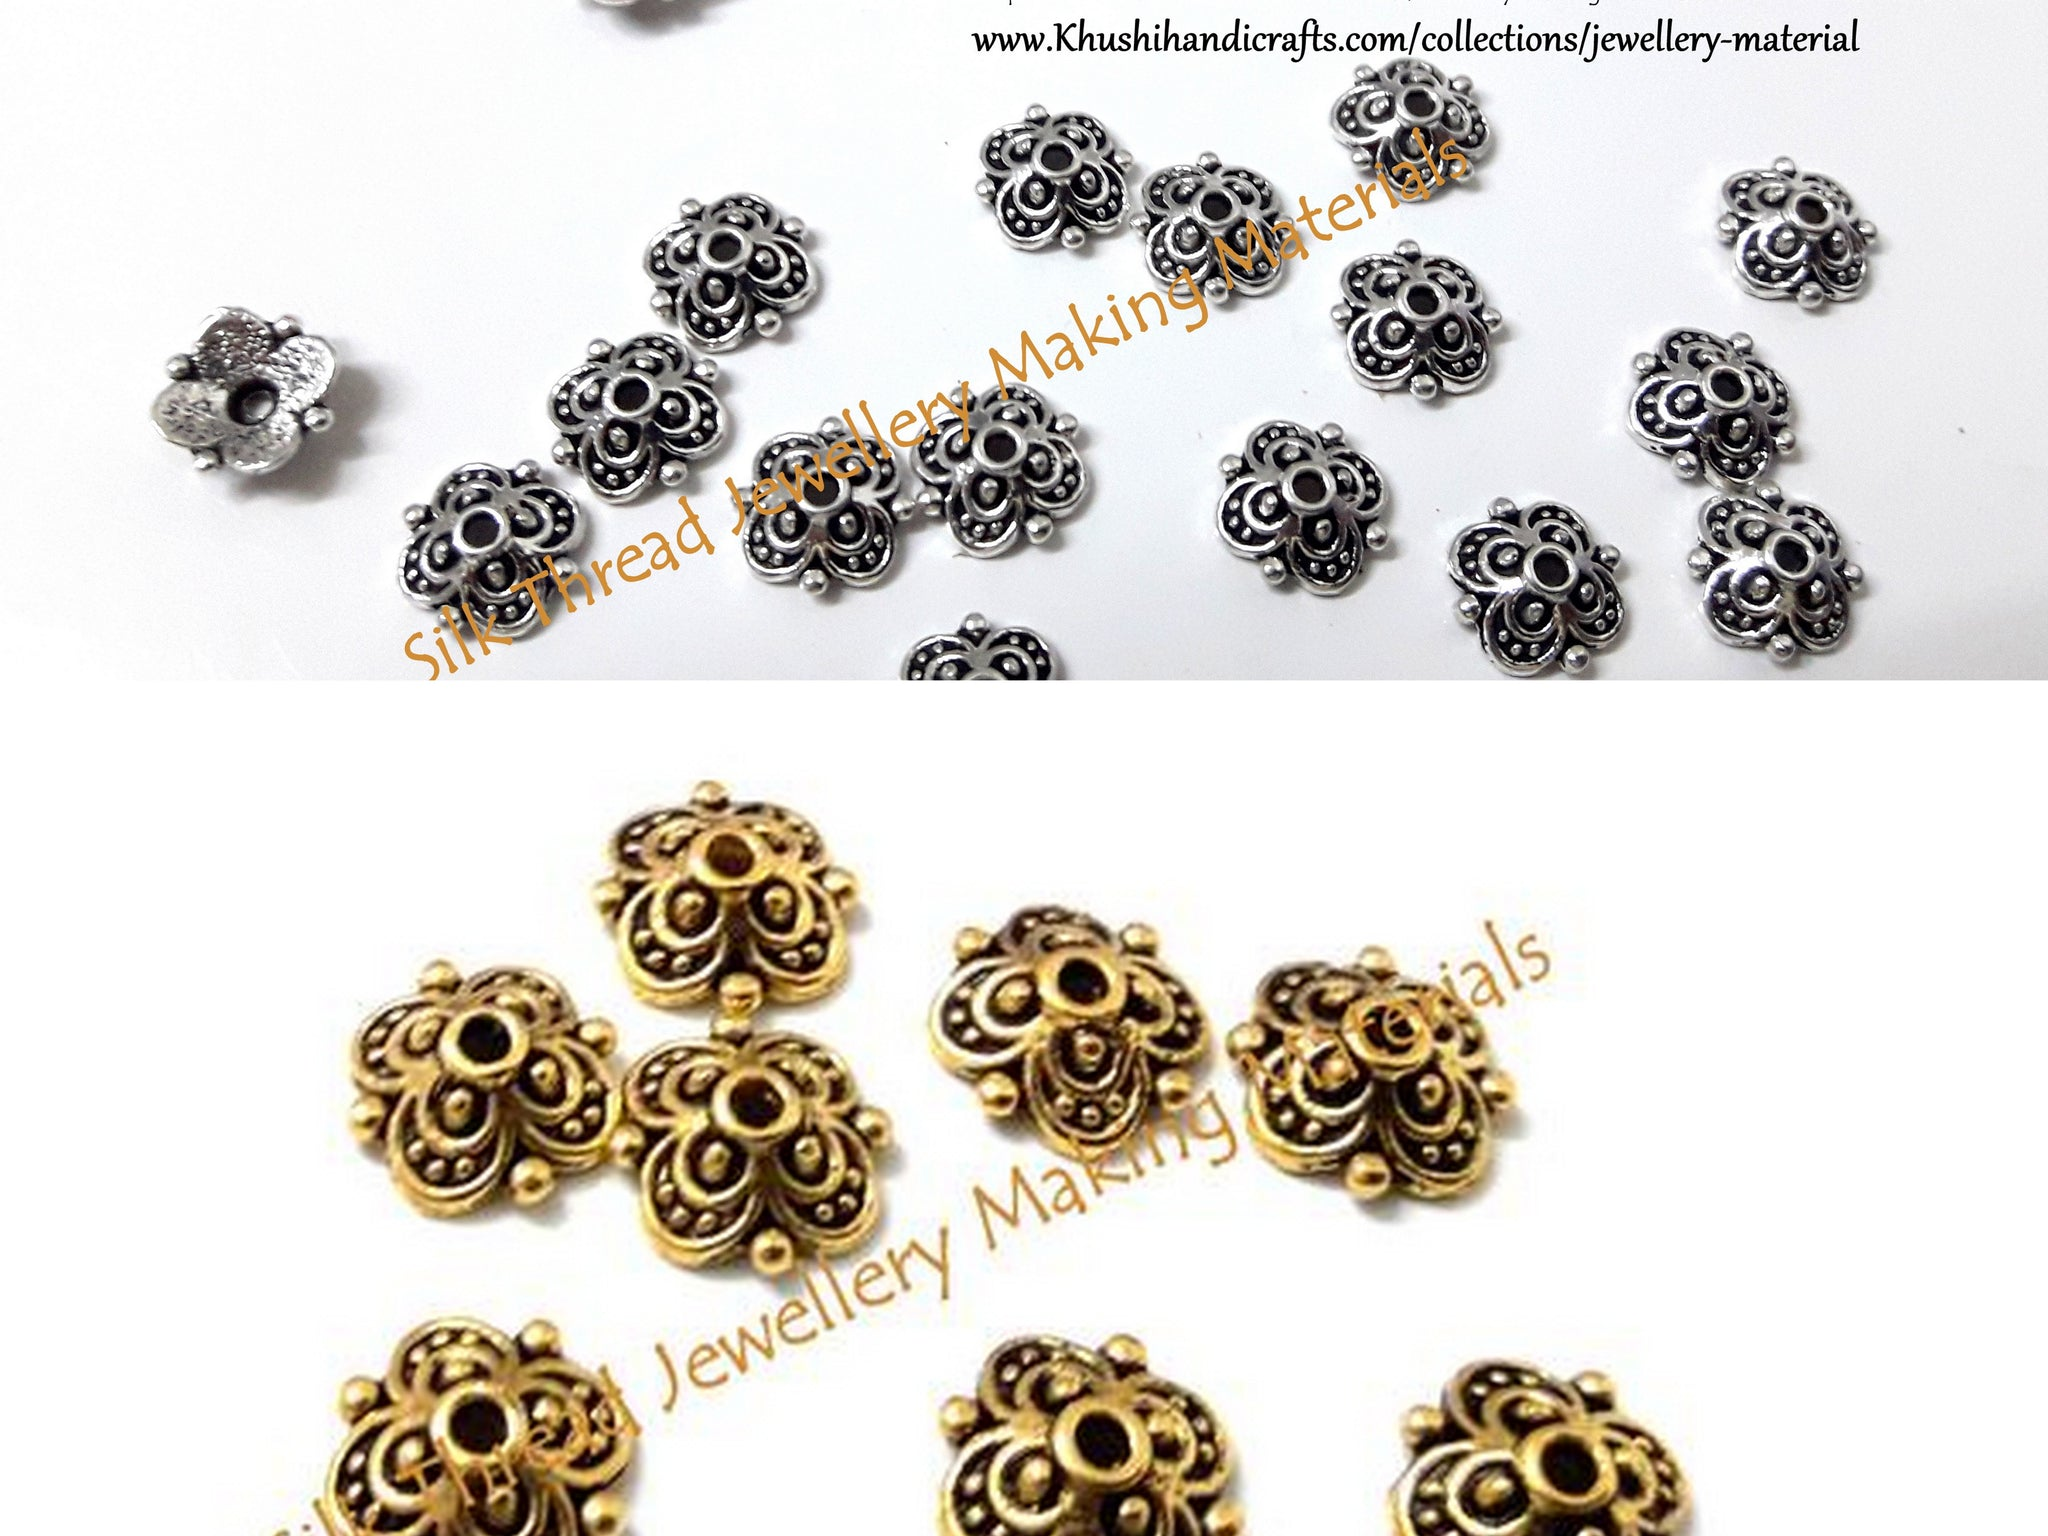 dbf9abe215f6b Buy Antique Gold  Silver Bead Caps online in India - Jewelry Materials!